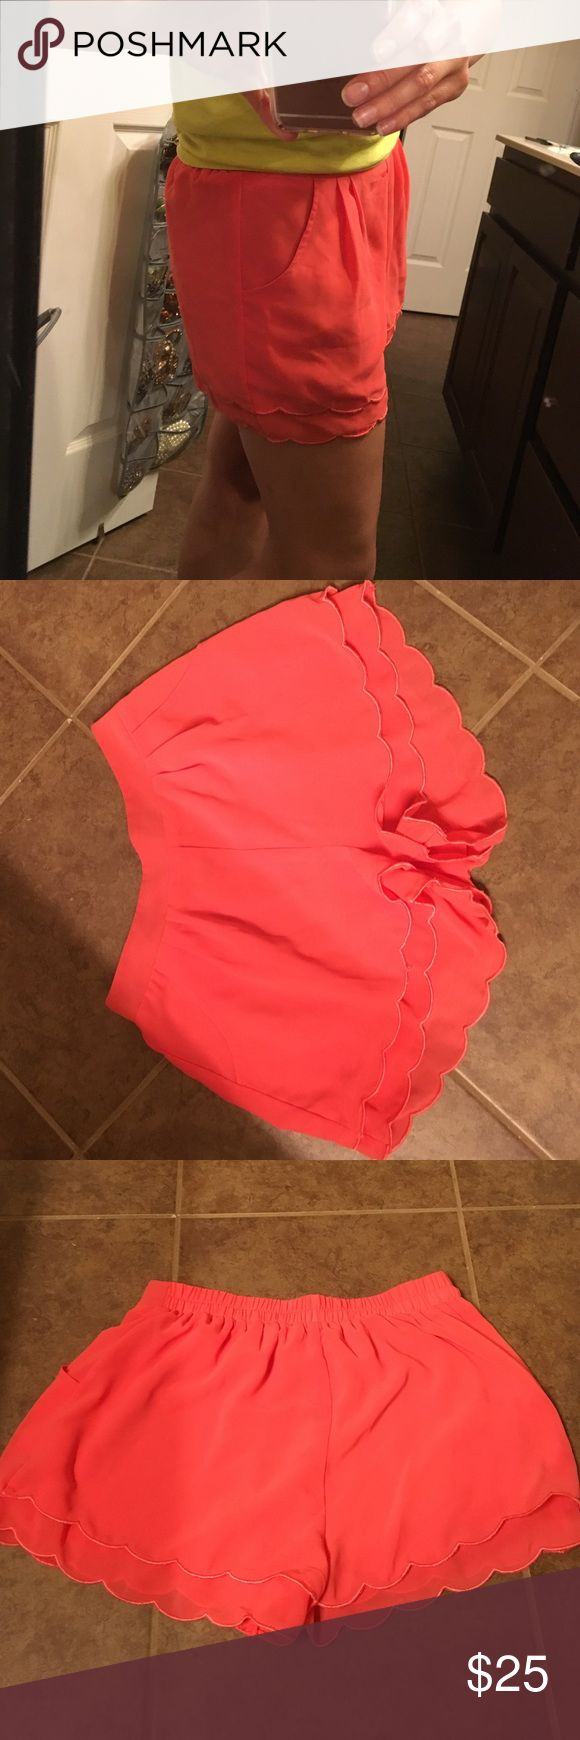 Peach shorts Flowy peachish shorts! Worn once in mint condition! Shorts